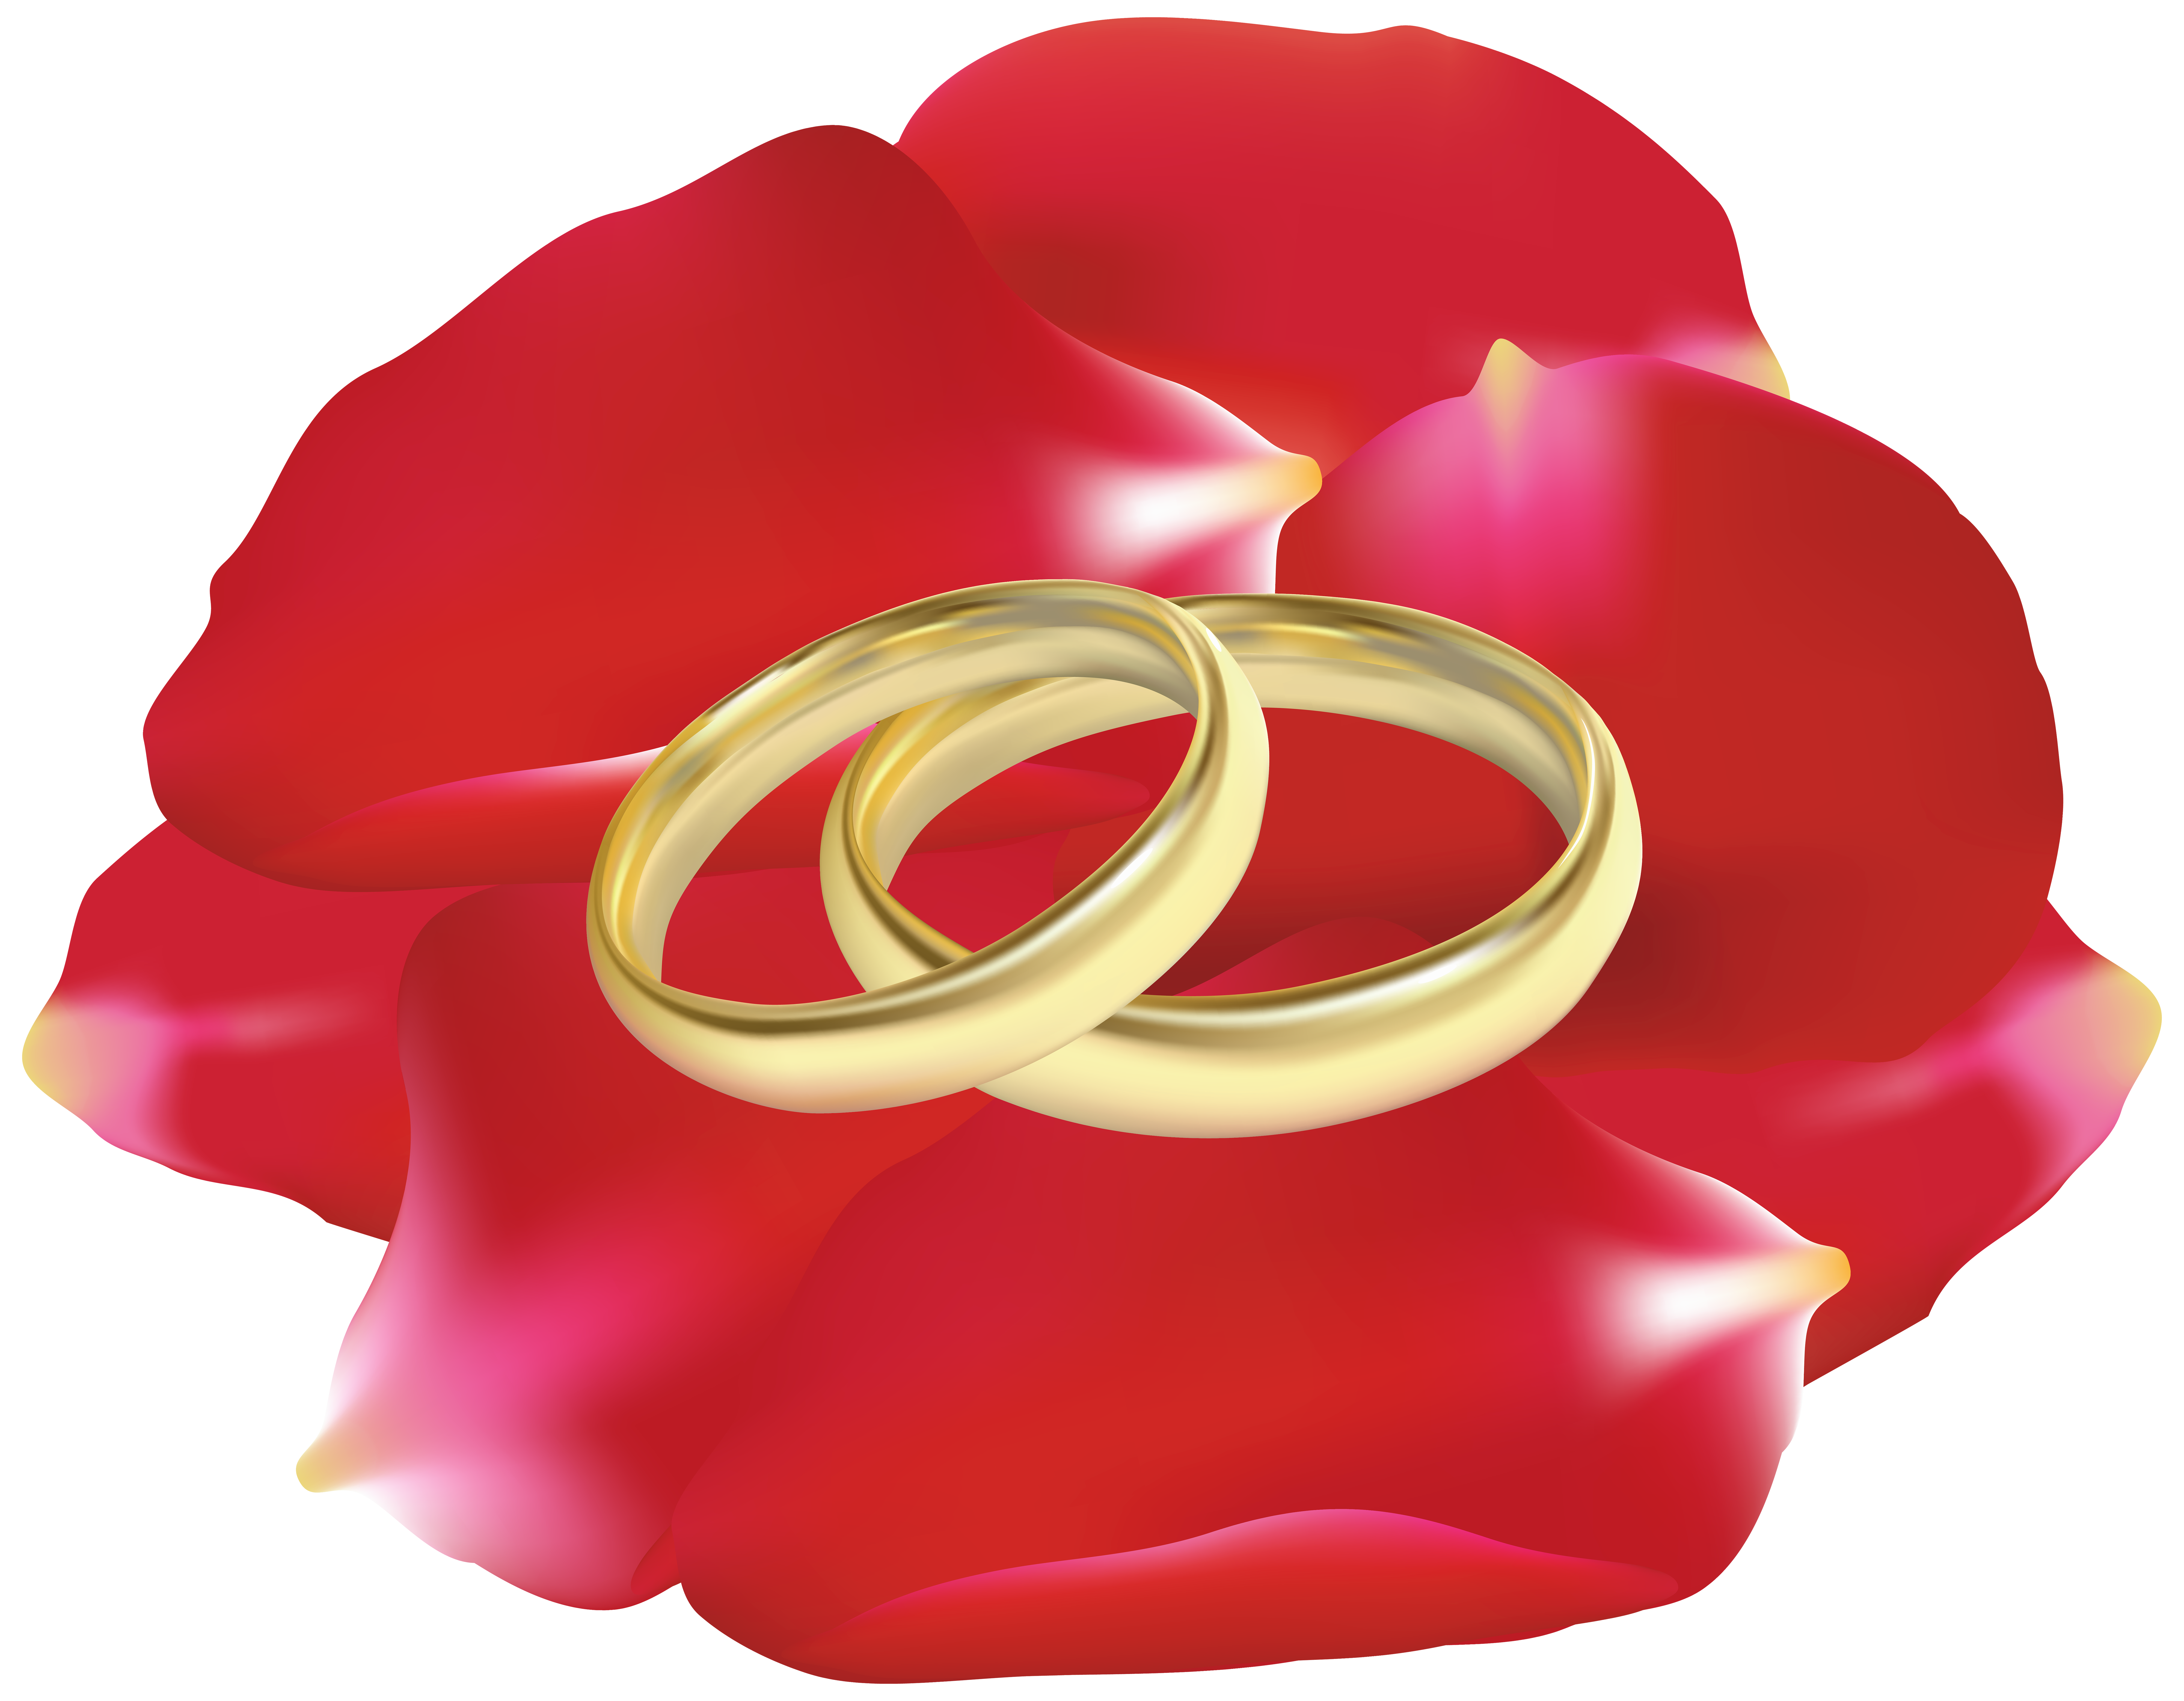 wedding rings rose petals png clip art best web clipart #31016